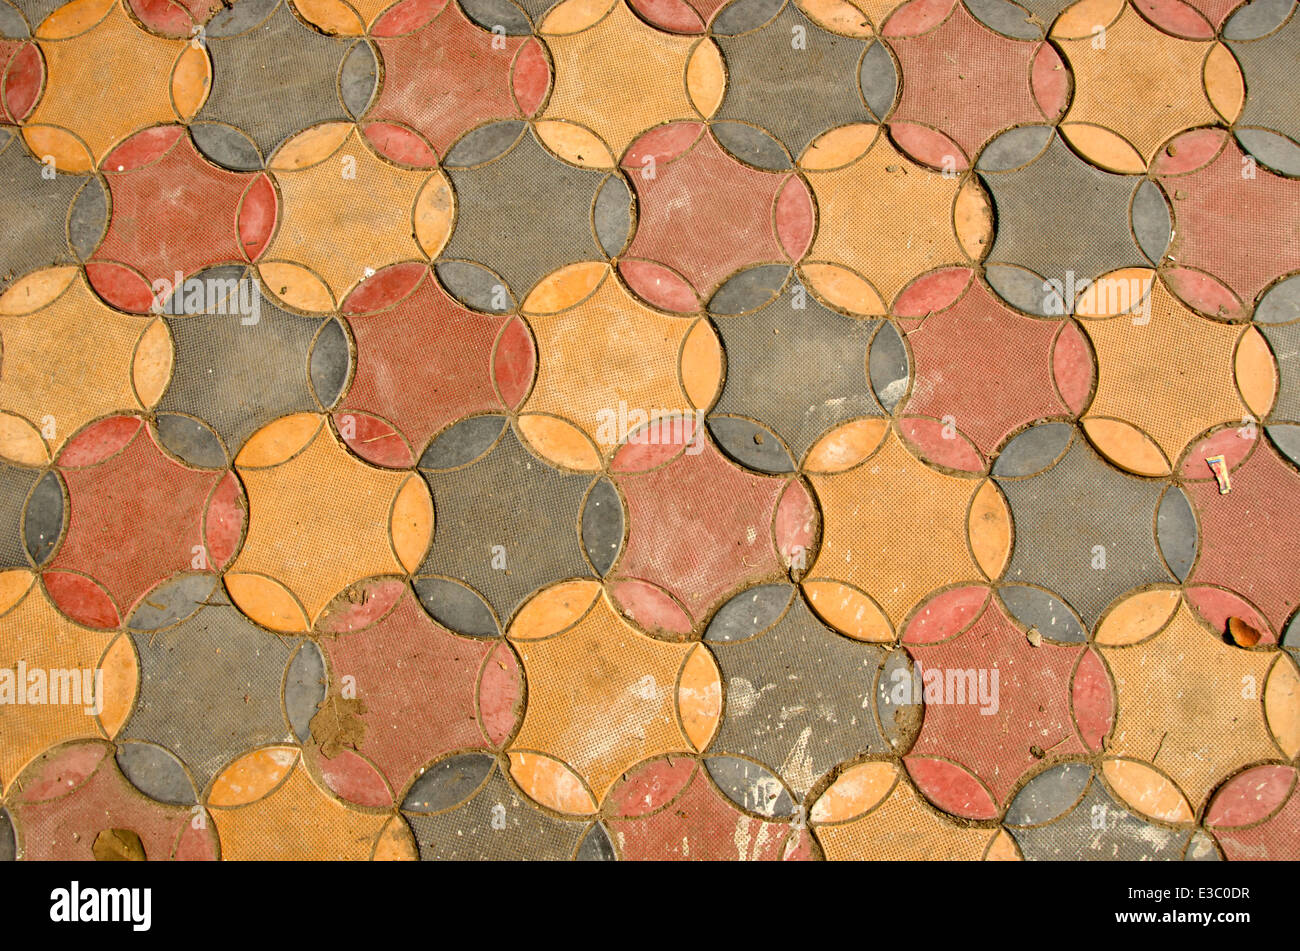 Ceramiche colorate piastrelle del pavimento background e texture